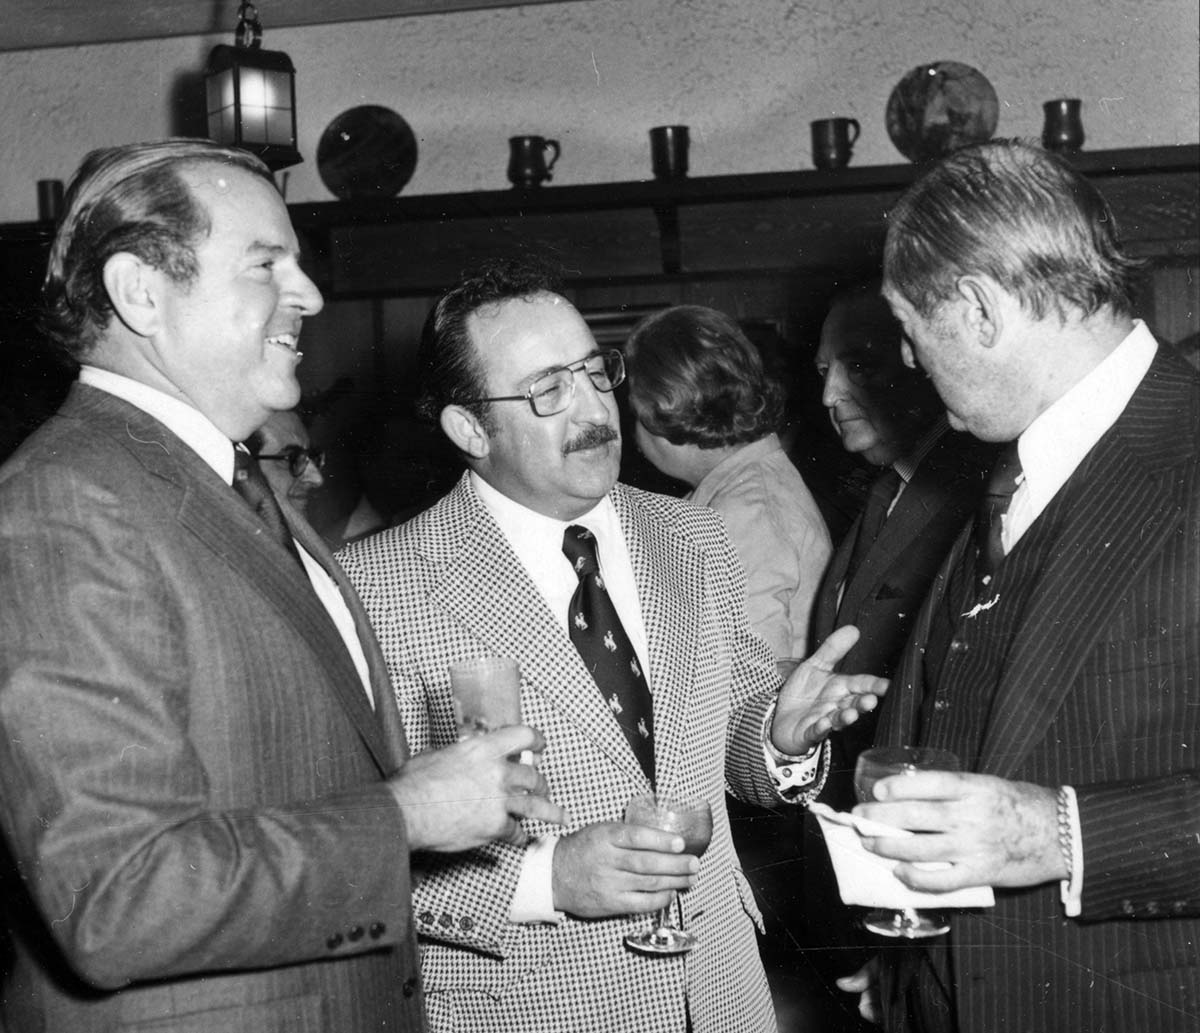 Jim Minter (center) visits with trustee Charles Duncan (left) and 21 Club owner, Peter Kriendler, at the spring 1976 reception with Winchester executives at the 21 Club. PN.20.2683